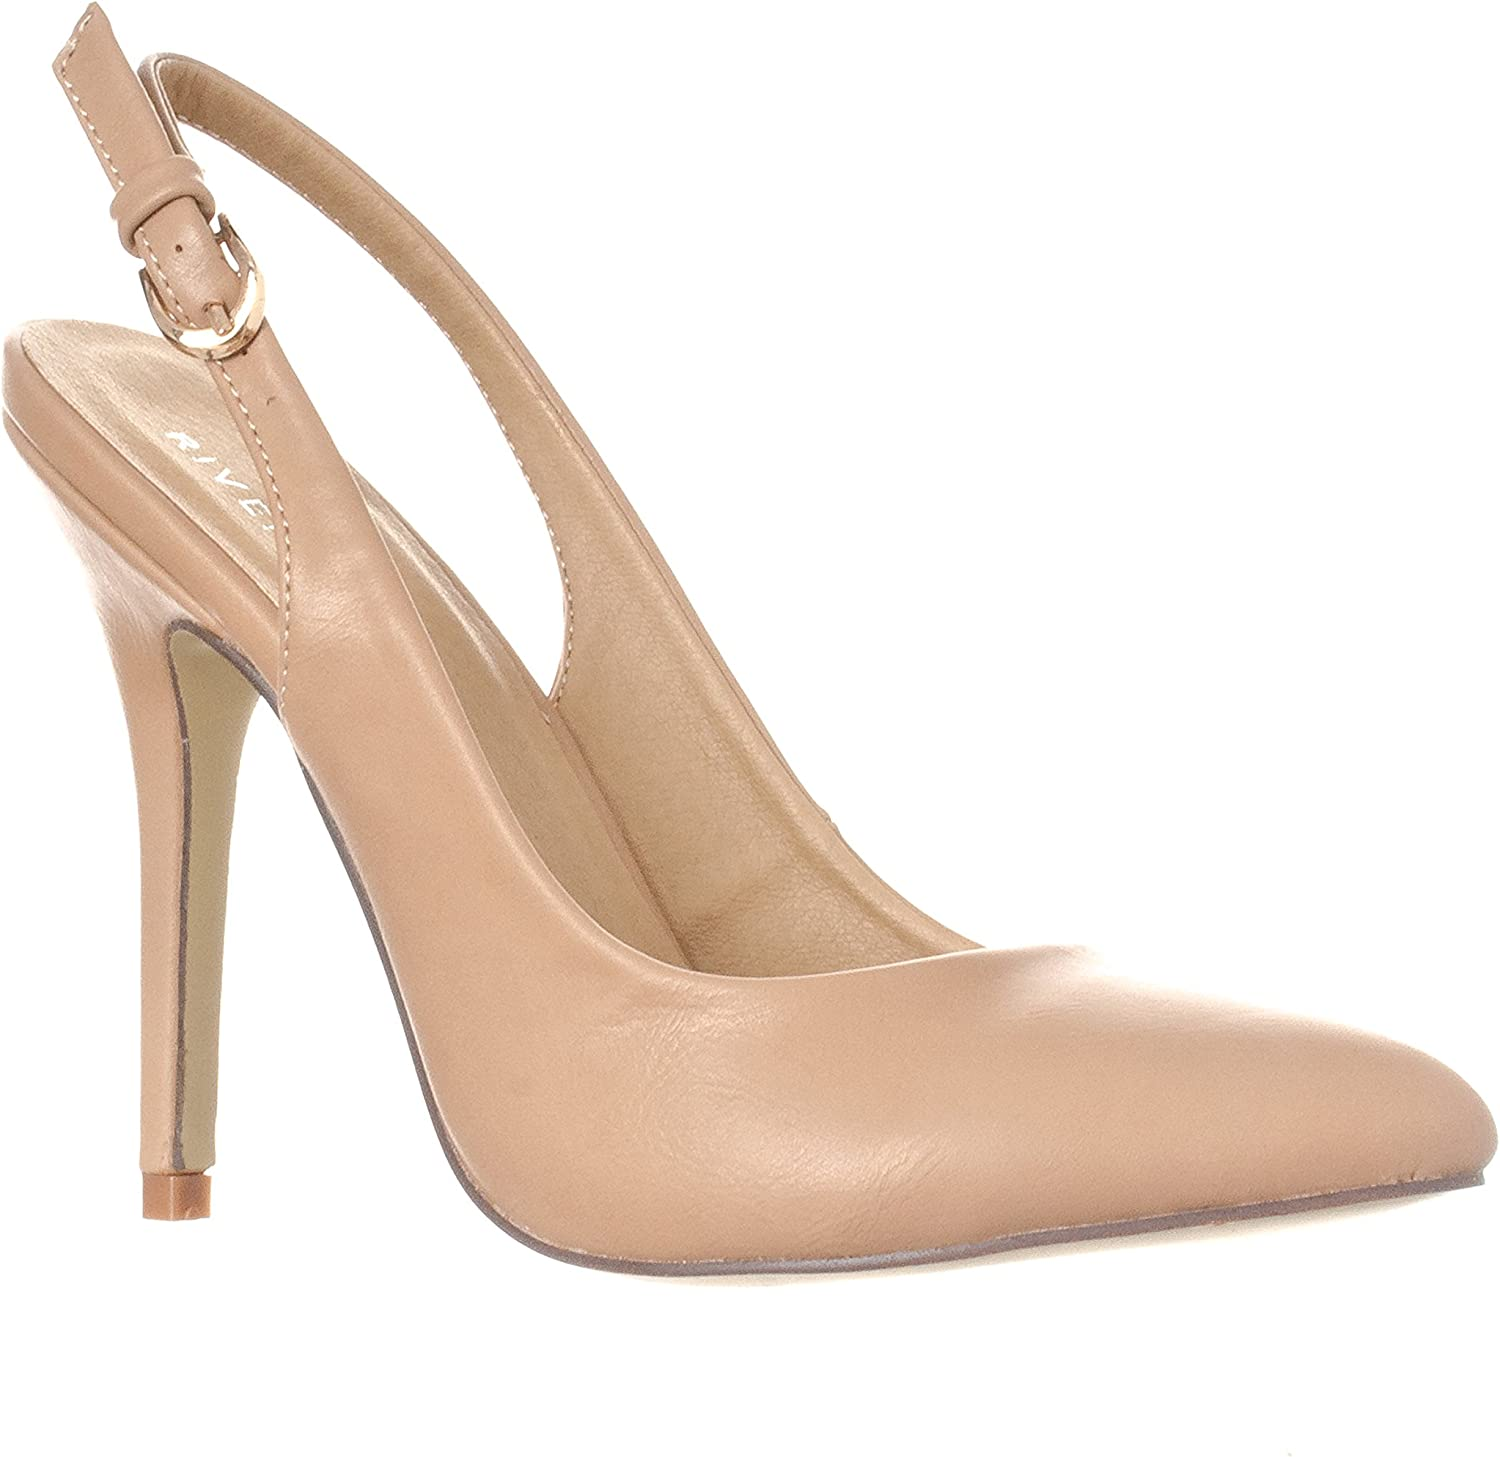 Riverberry Women's Lucy Pointed-Toe, Sling Back Pump Stiletto Heels